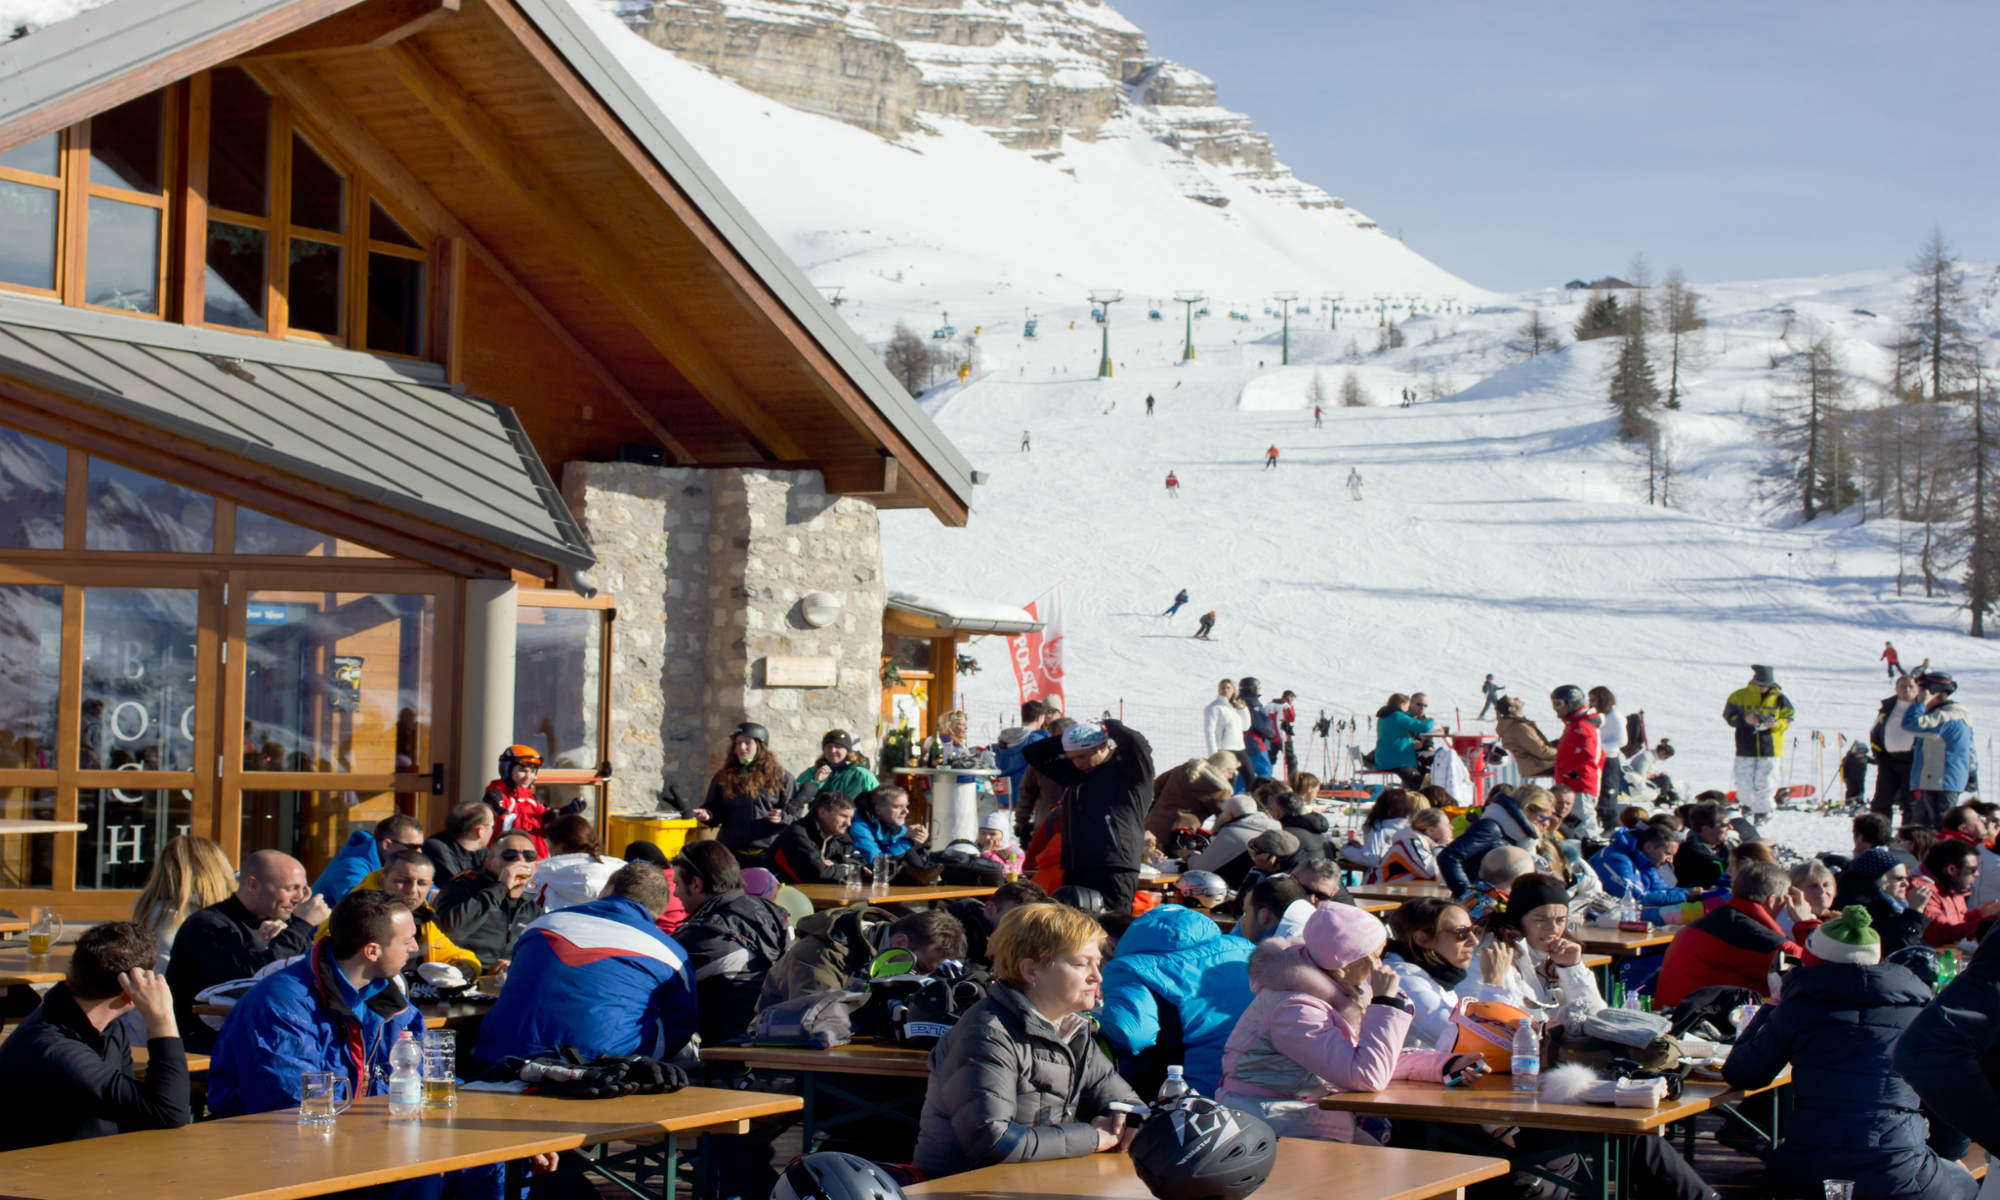 Skiers on a piste and others enjoying a rest in the sunshine at Madonna di Campiglio.